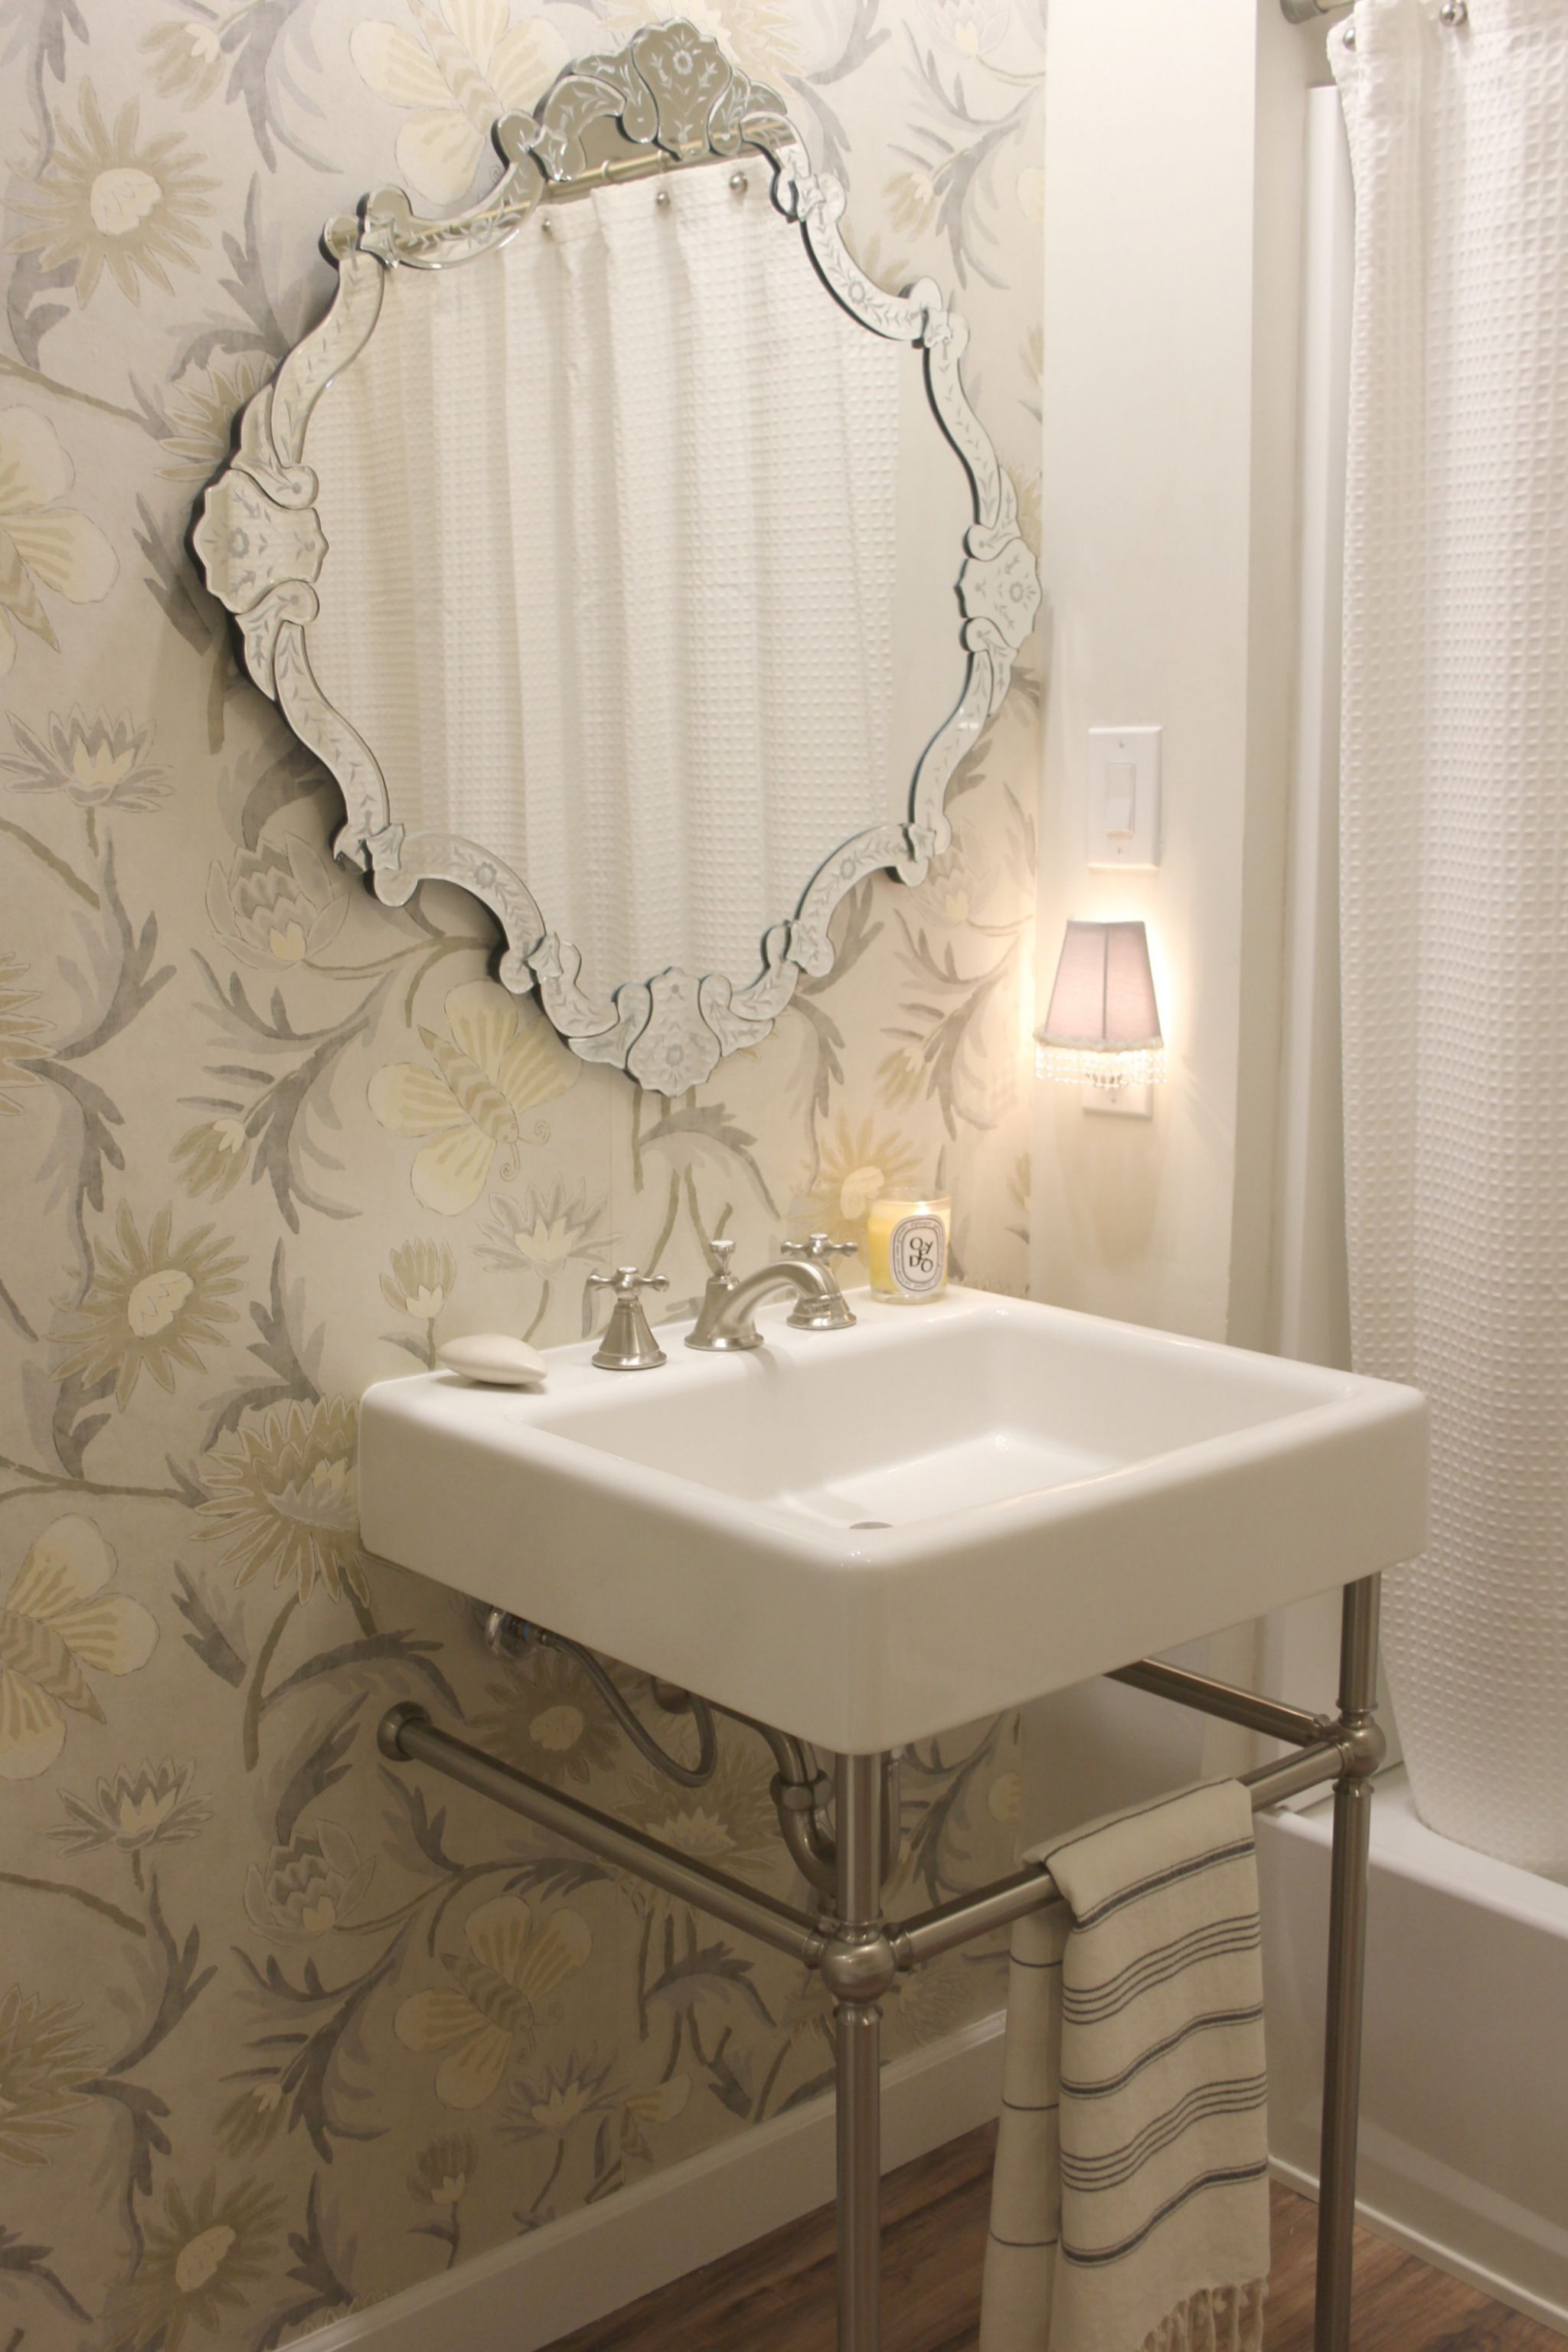 A Stunning New Modern Farmhouse Bathroom At The Fixer Upper Hello Lovely